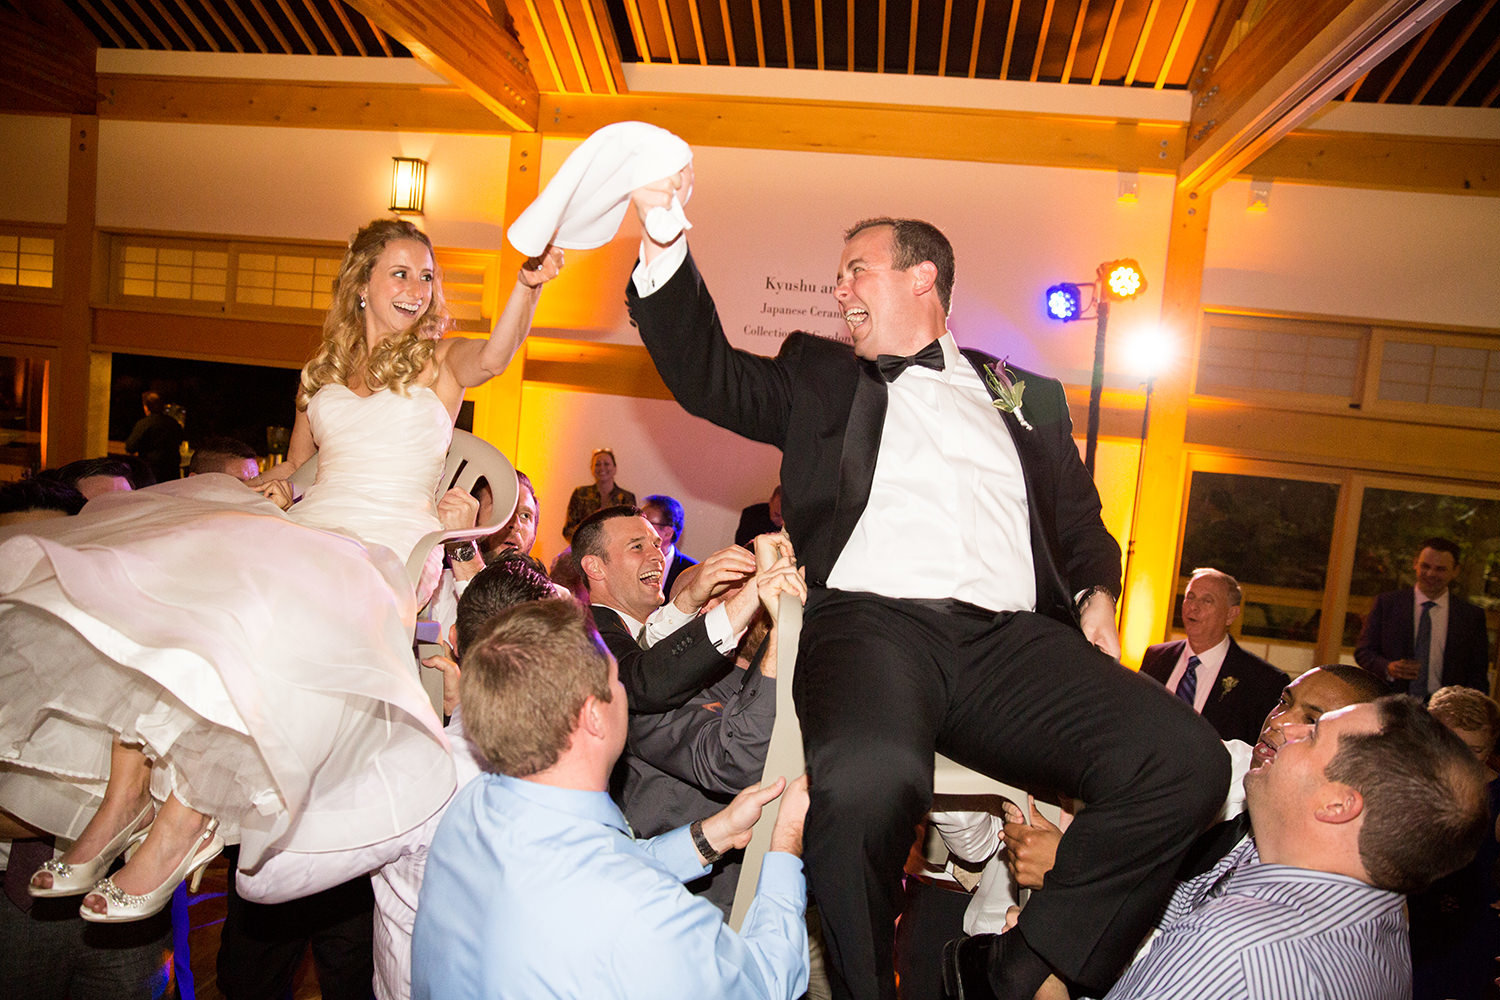 bride and groom lifted on chairs at the reception